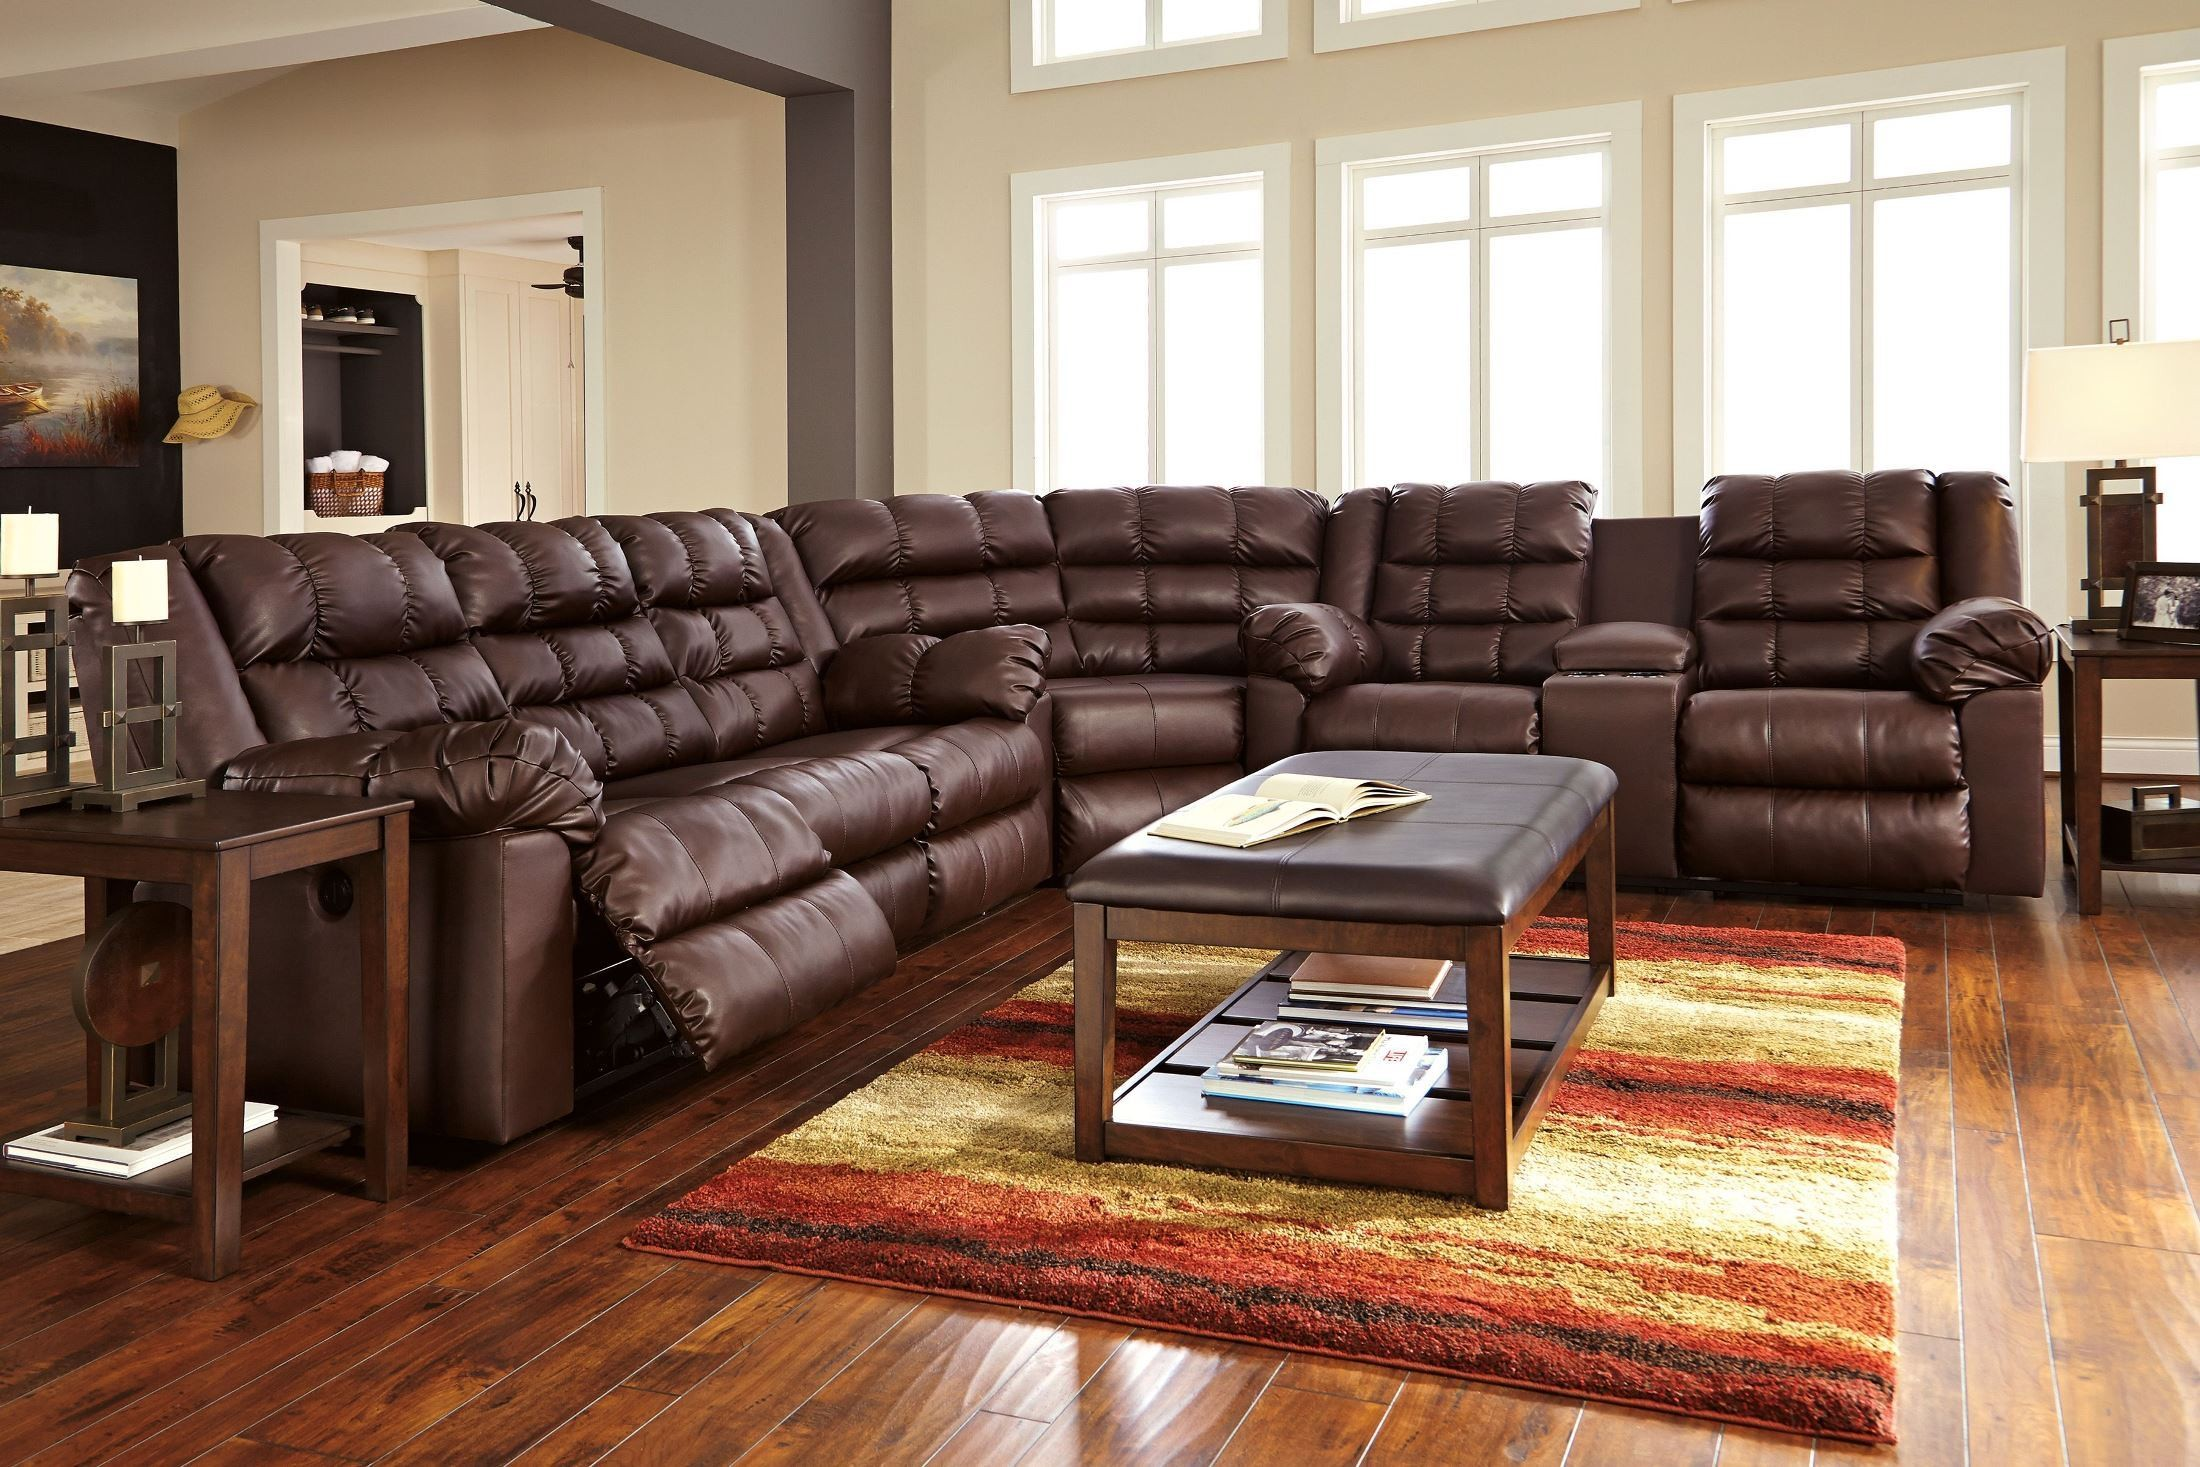 Brolayne Durablend Brown Reclining Sectional From Ashley 83202 88 94 77 Coleman Furniture